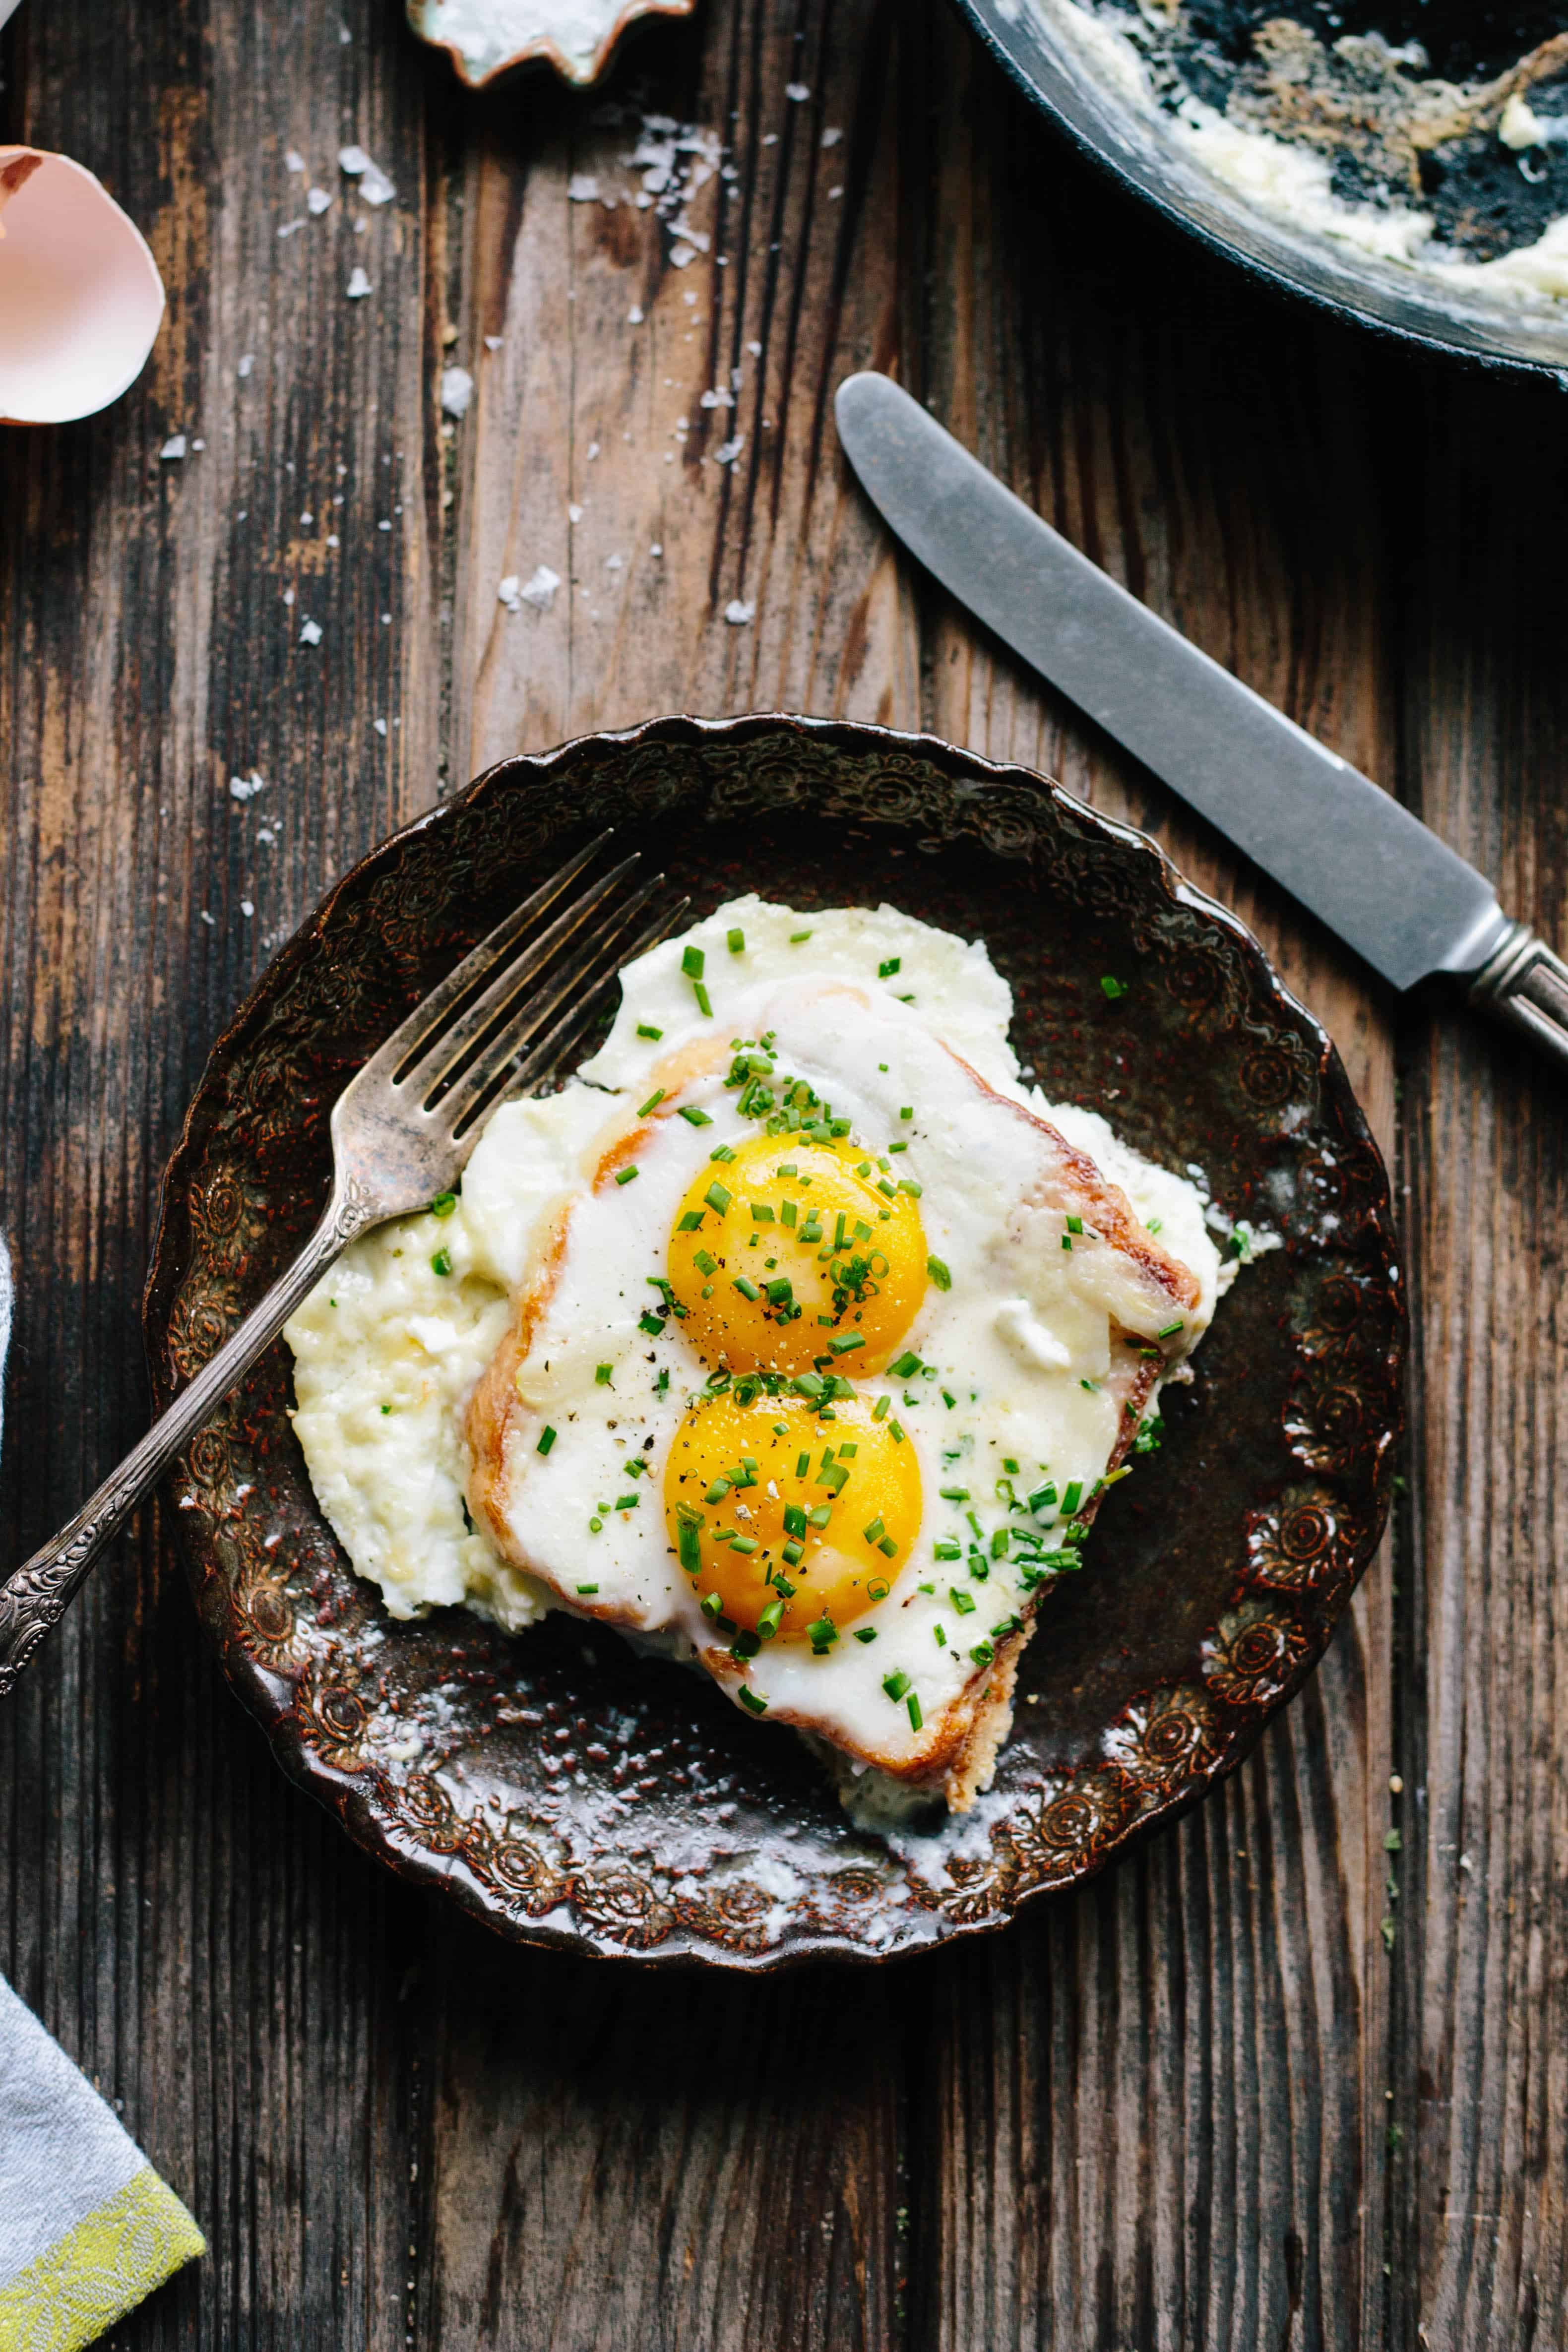 French Baked Toast with Cream and Eggs | Easy + Impressive French Breakfast | ColeyCooks.com